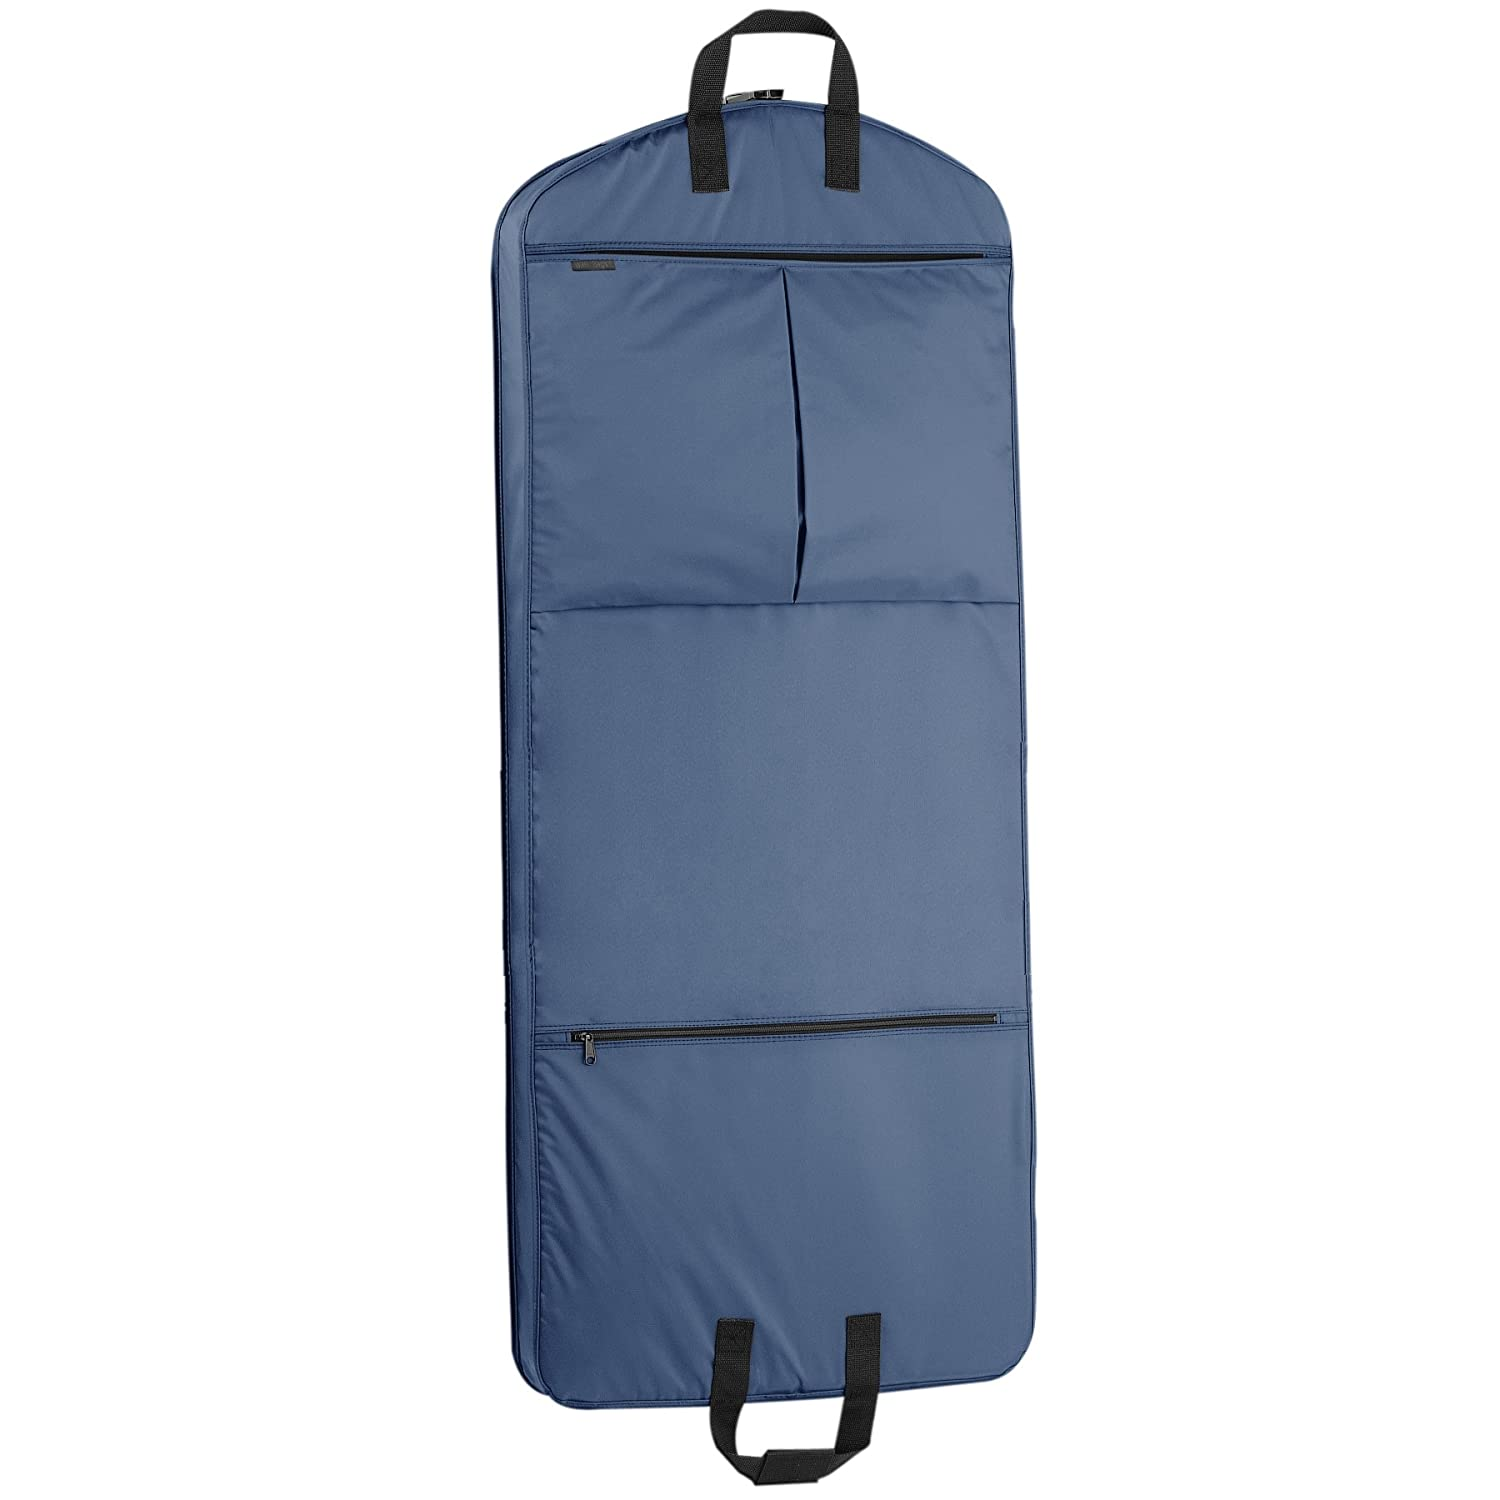 WallyBags Luggage 52 Garment Bag with Pockets Navy 855